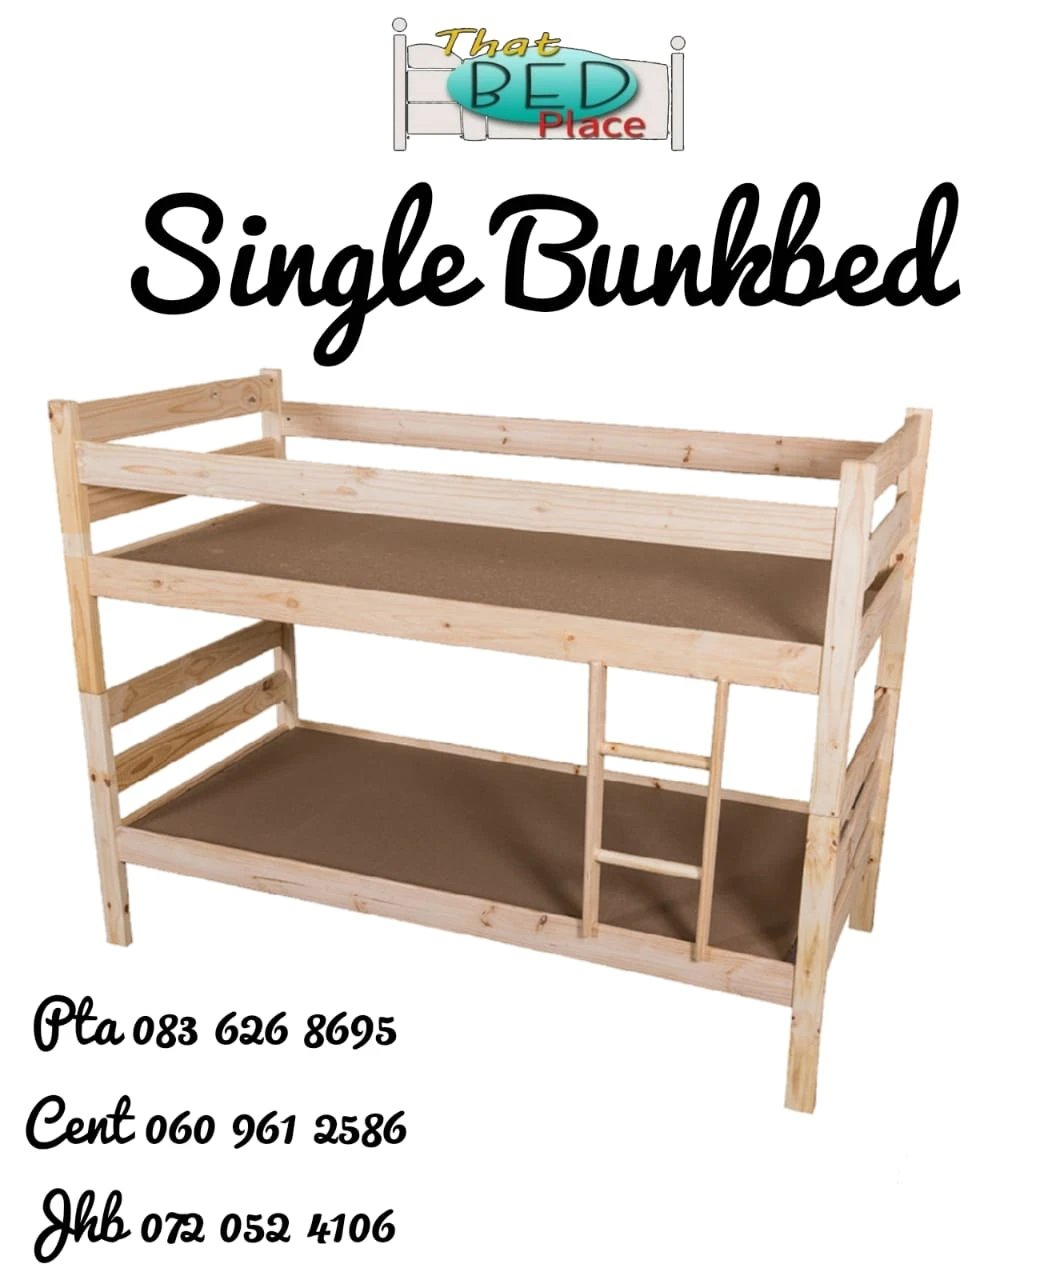 Bunk Bed - Locally Manufactured